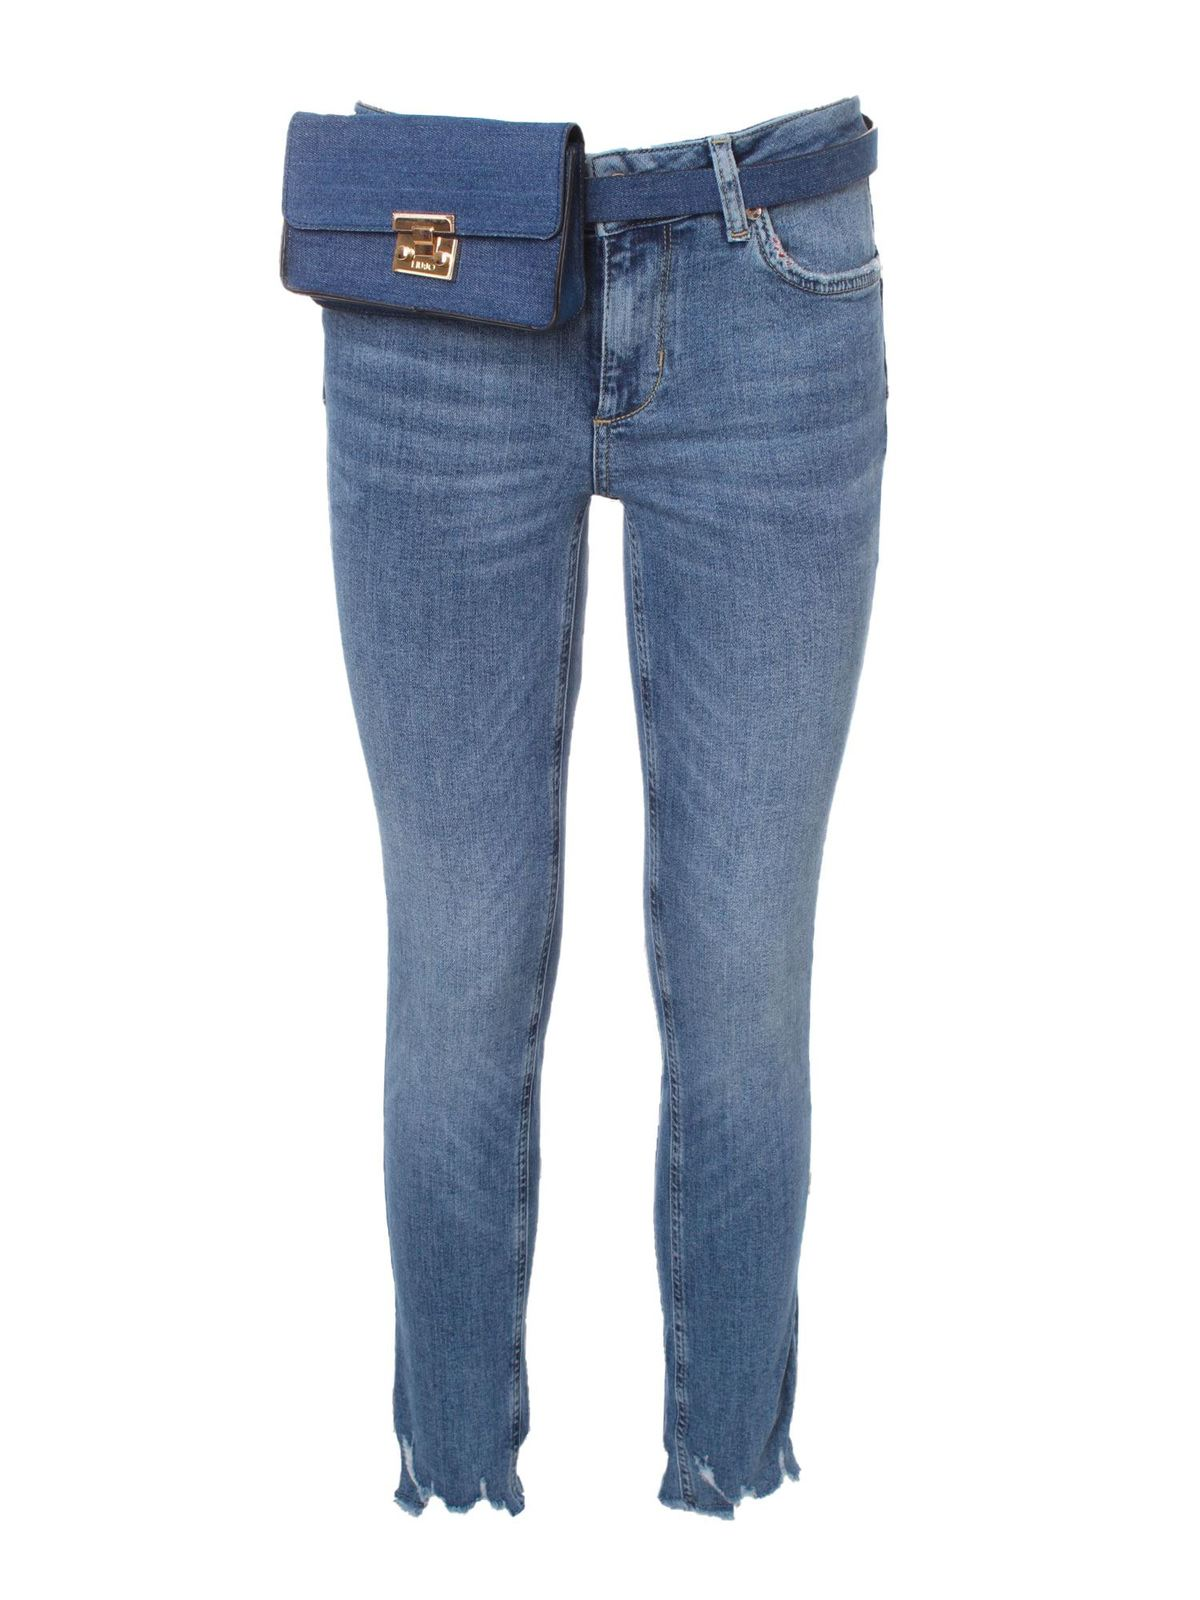 Liu •jo JEANS WITH POUCH IN BLUE